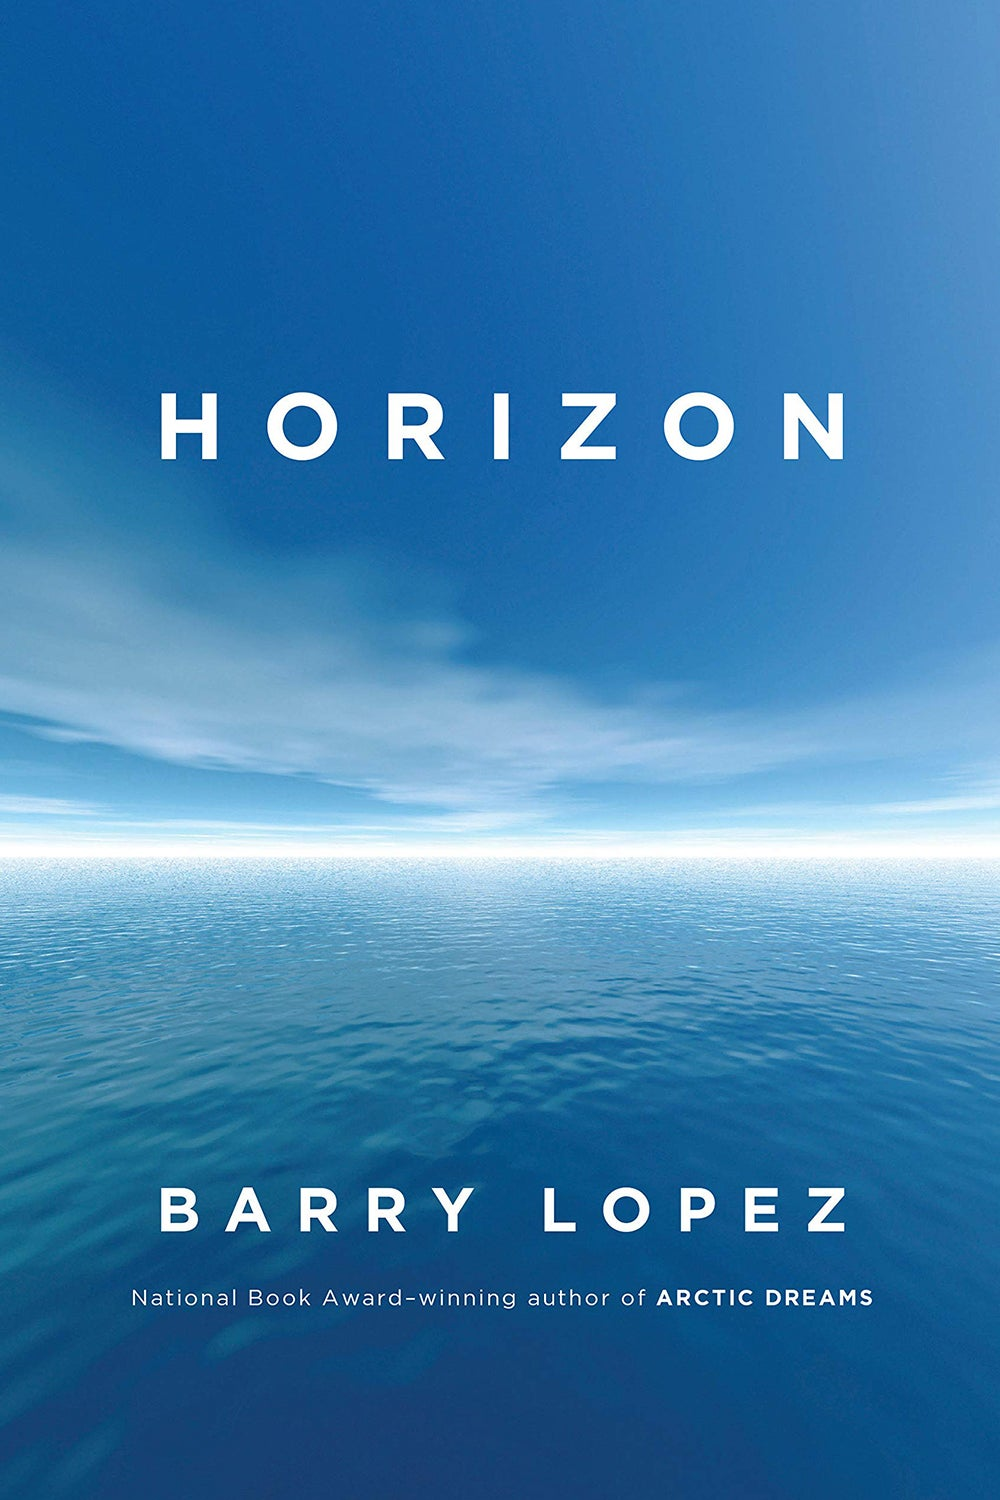 Horizon by Barry Lopez